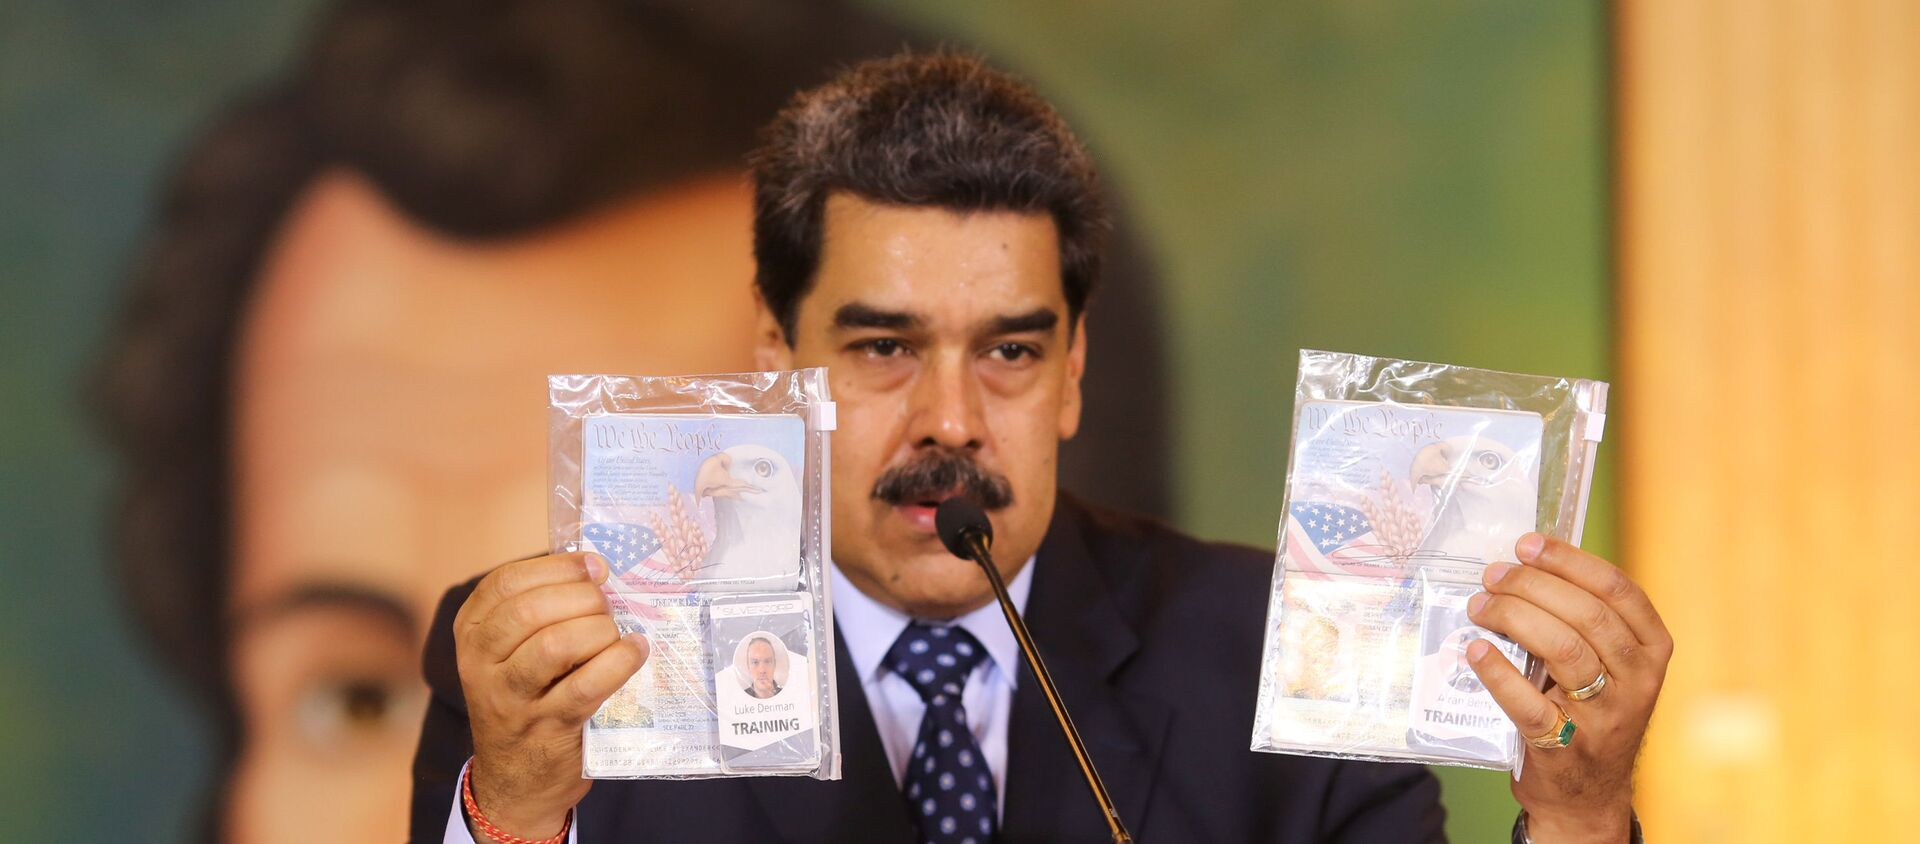 Personal documents are shown by Venezuela's President Nicolas Maduro during a virtual news conference in Caracas, Venezuela May 6, 2020. - Sputnik International, 1920, 15.05.2020